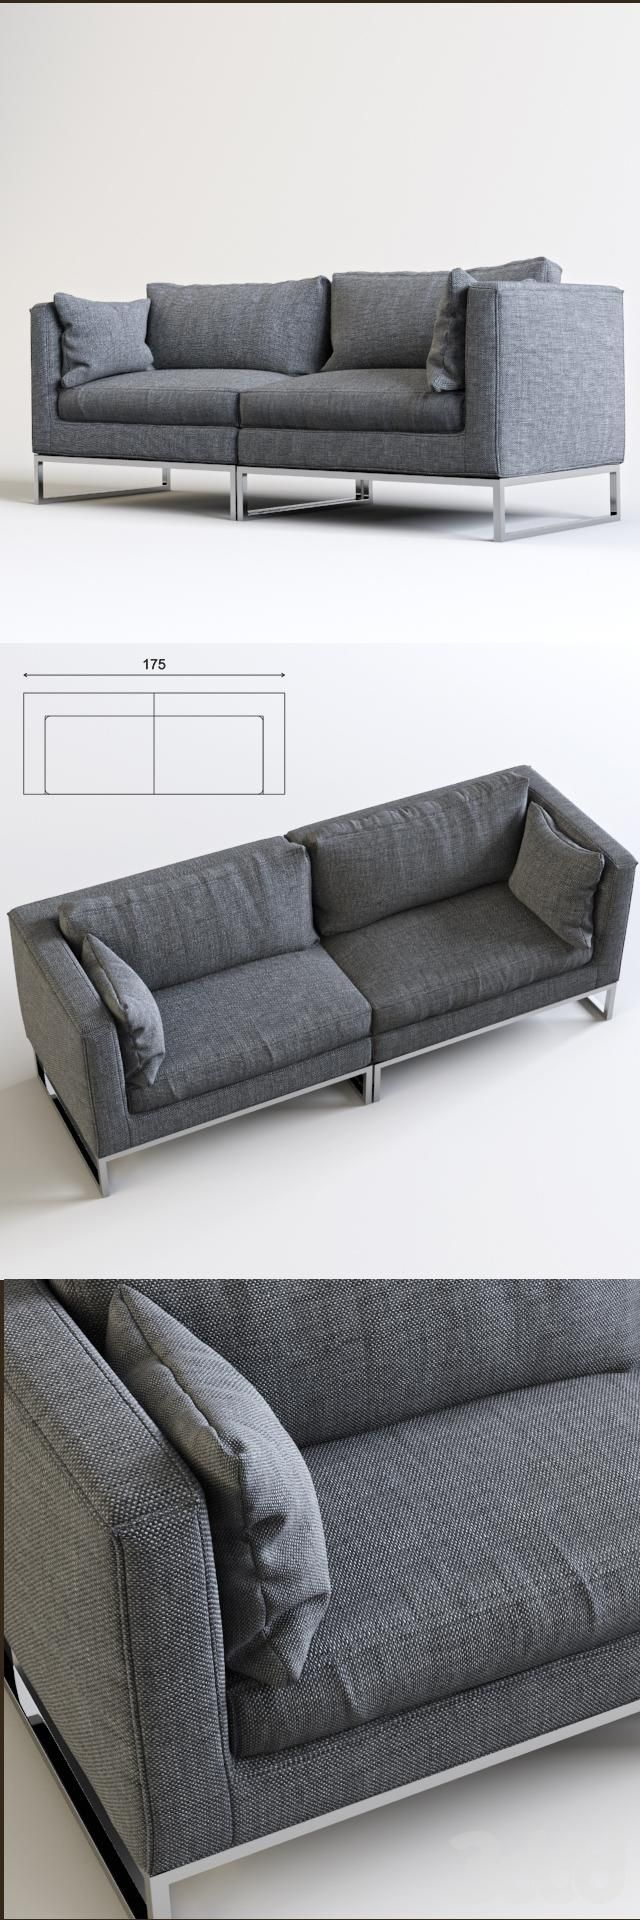 14 best furniture: sofa images on pinterest | sofa, 3ds max and sofas - Das Modulare Ledersofa Heart Formenti